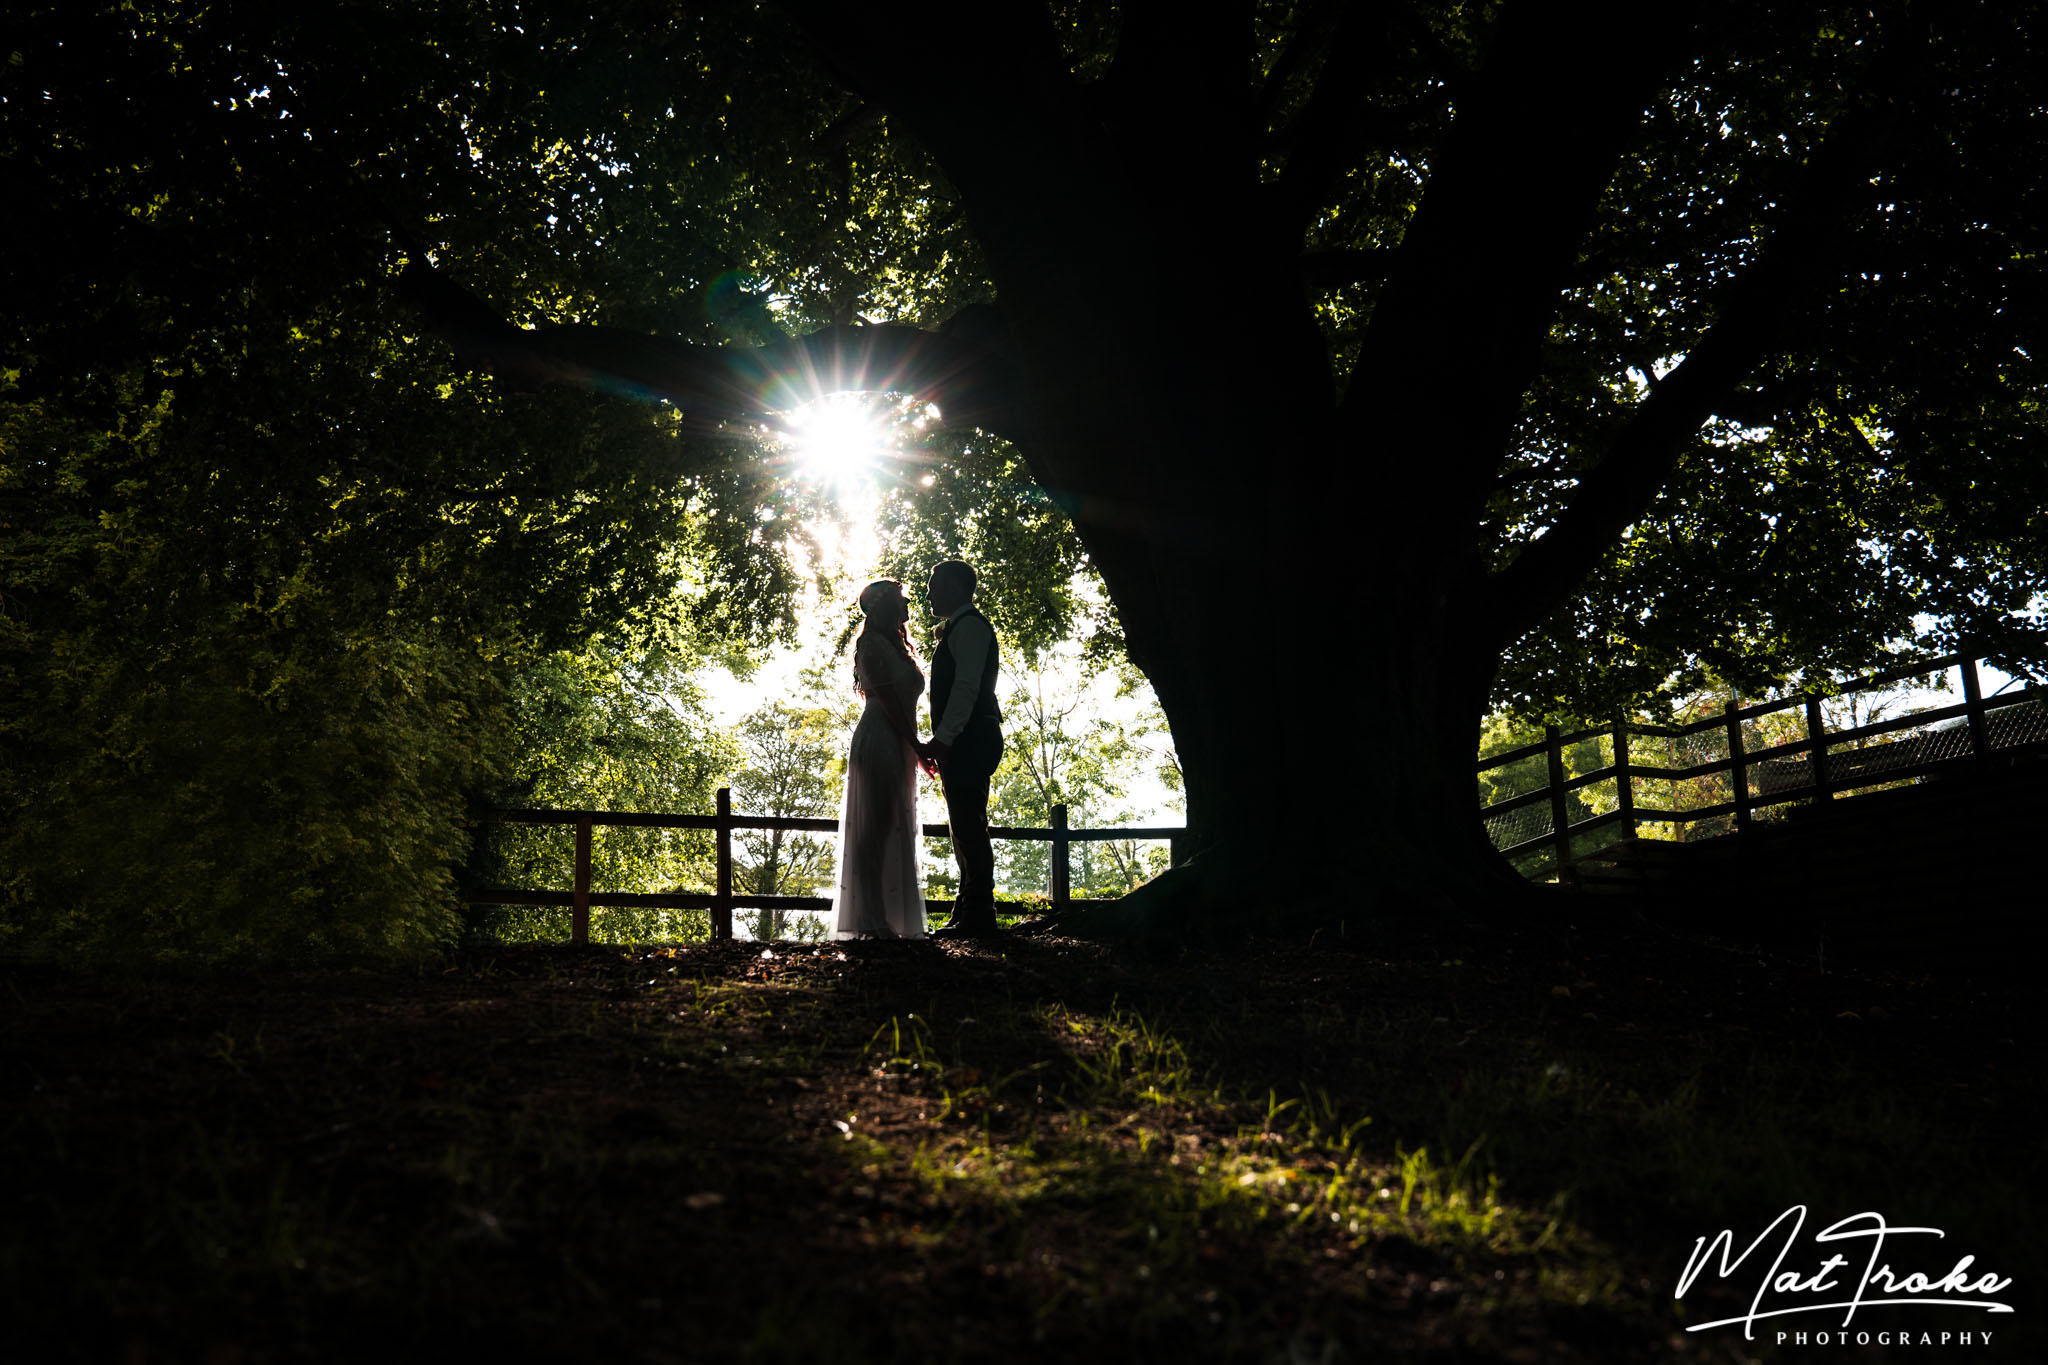 barn_farm_wedding_near_me_farmyard_fields_nottingham_derby_photographer_photography